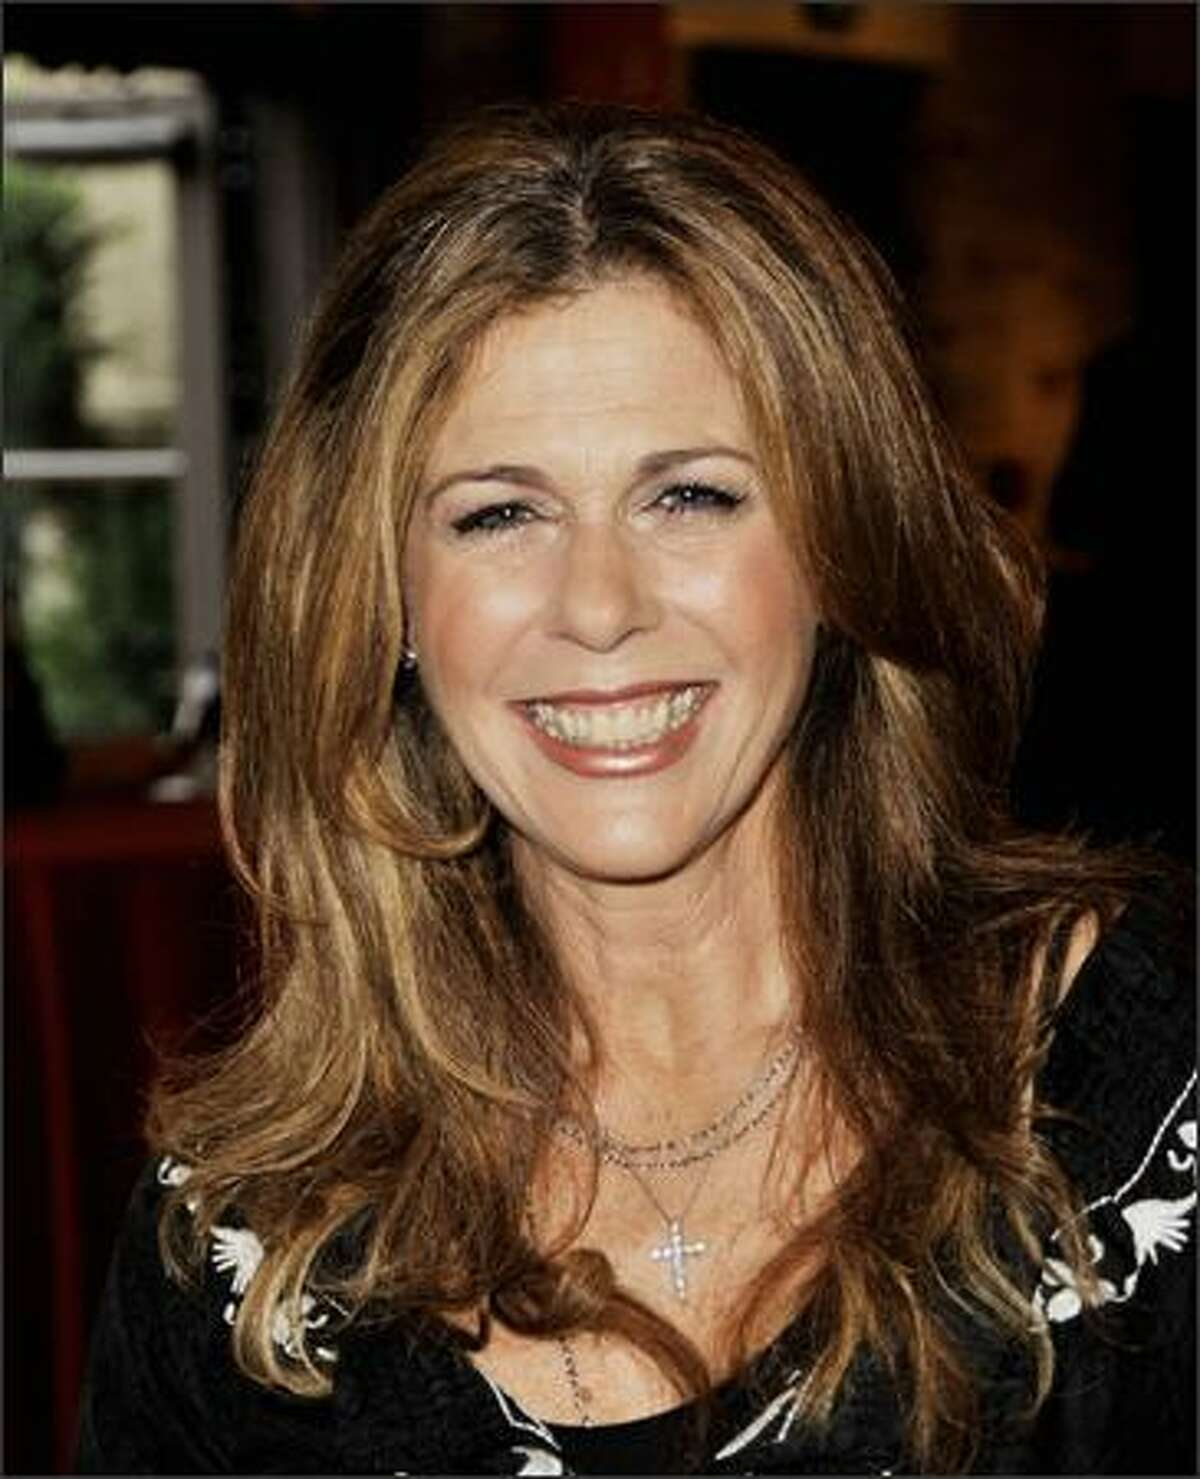 Actress Rita Wilson arrives at Shakespeare Festival/LA's Simply Shakespeare 2009 'The Comedy of Errors' at The Geffen Playhouse in Los Angeles, California.